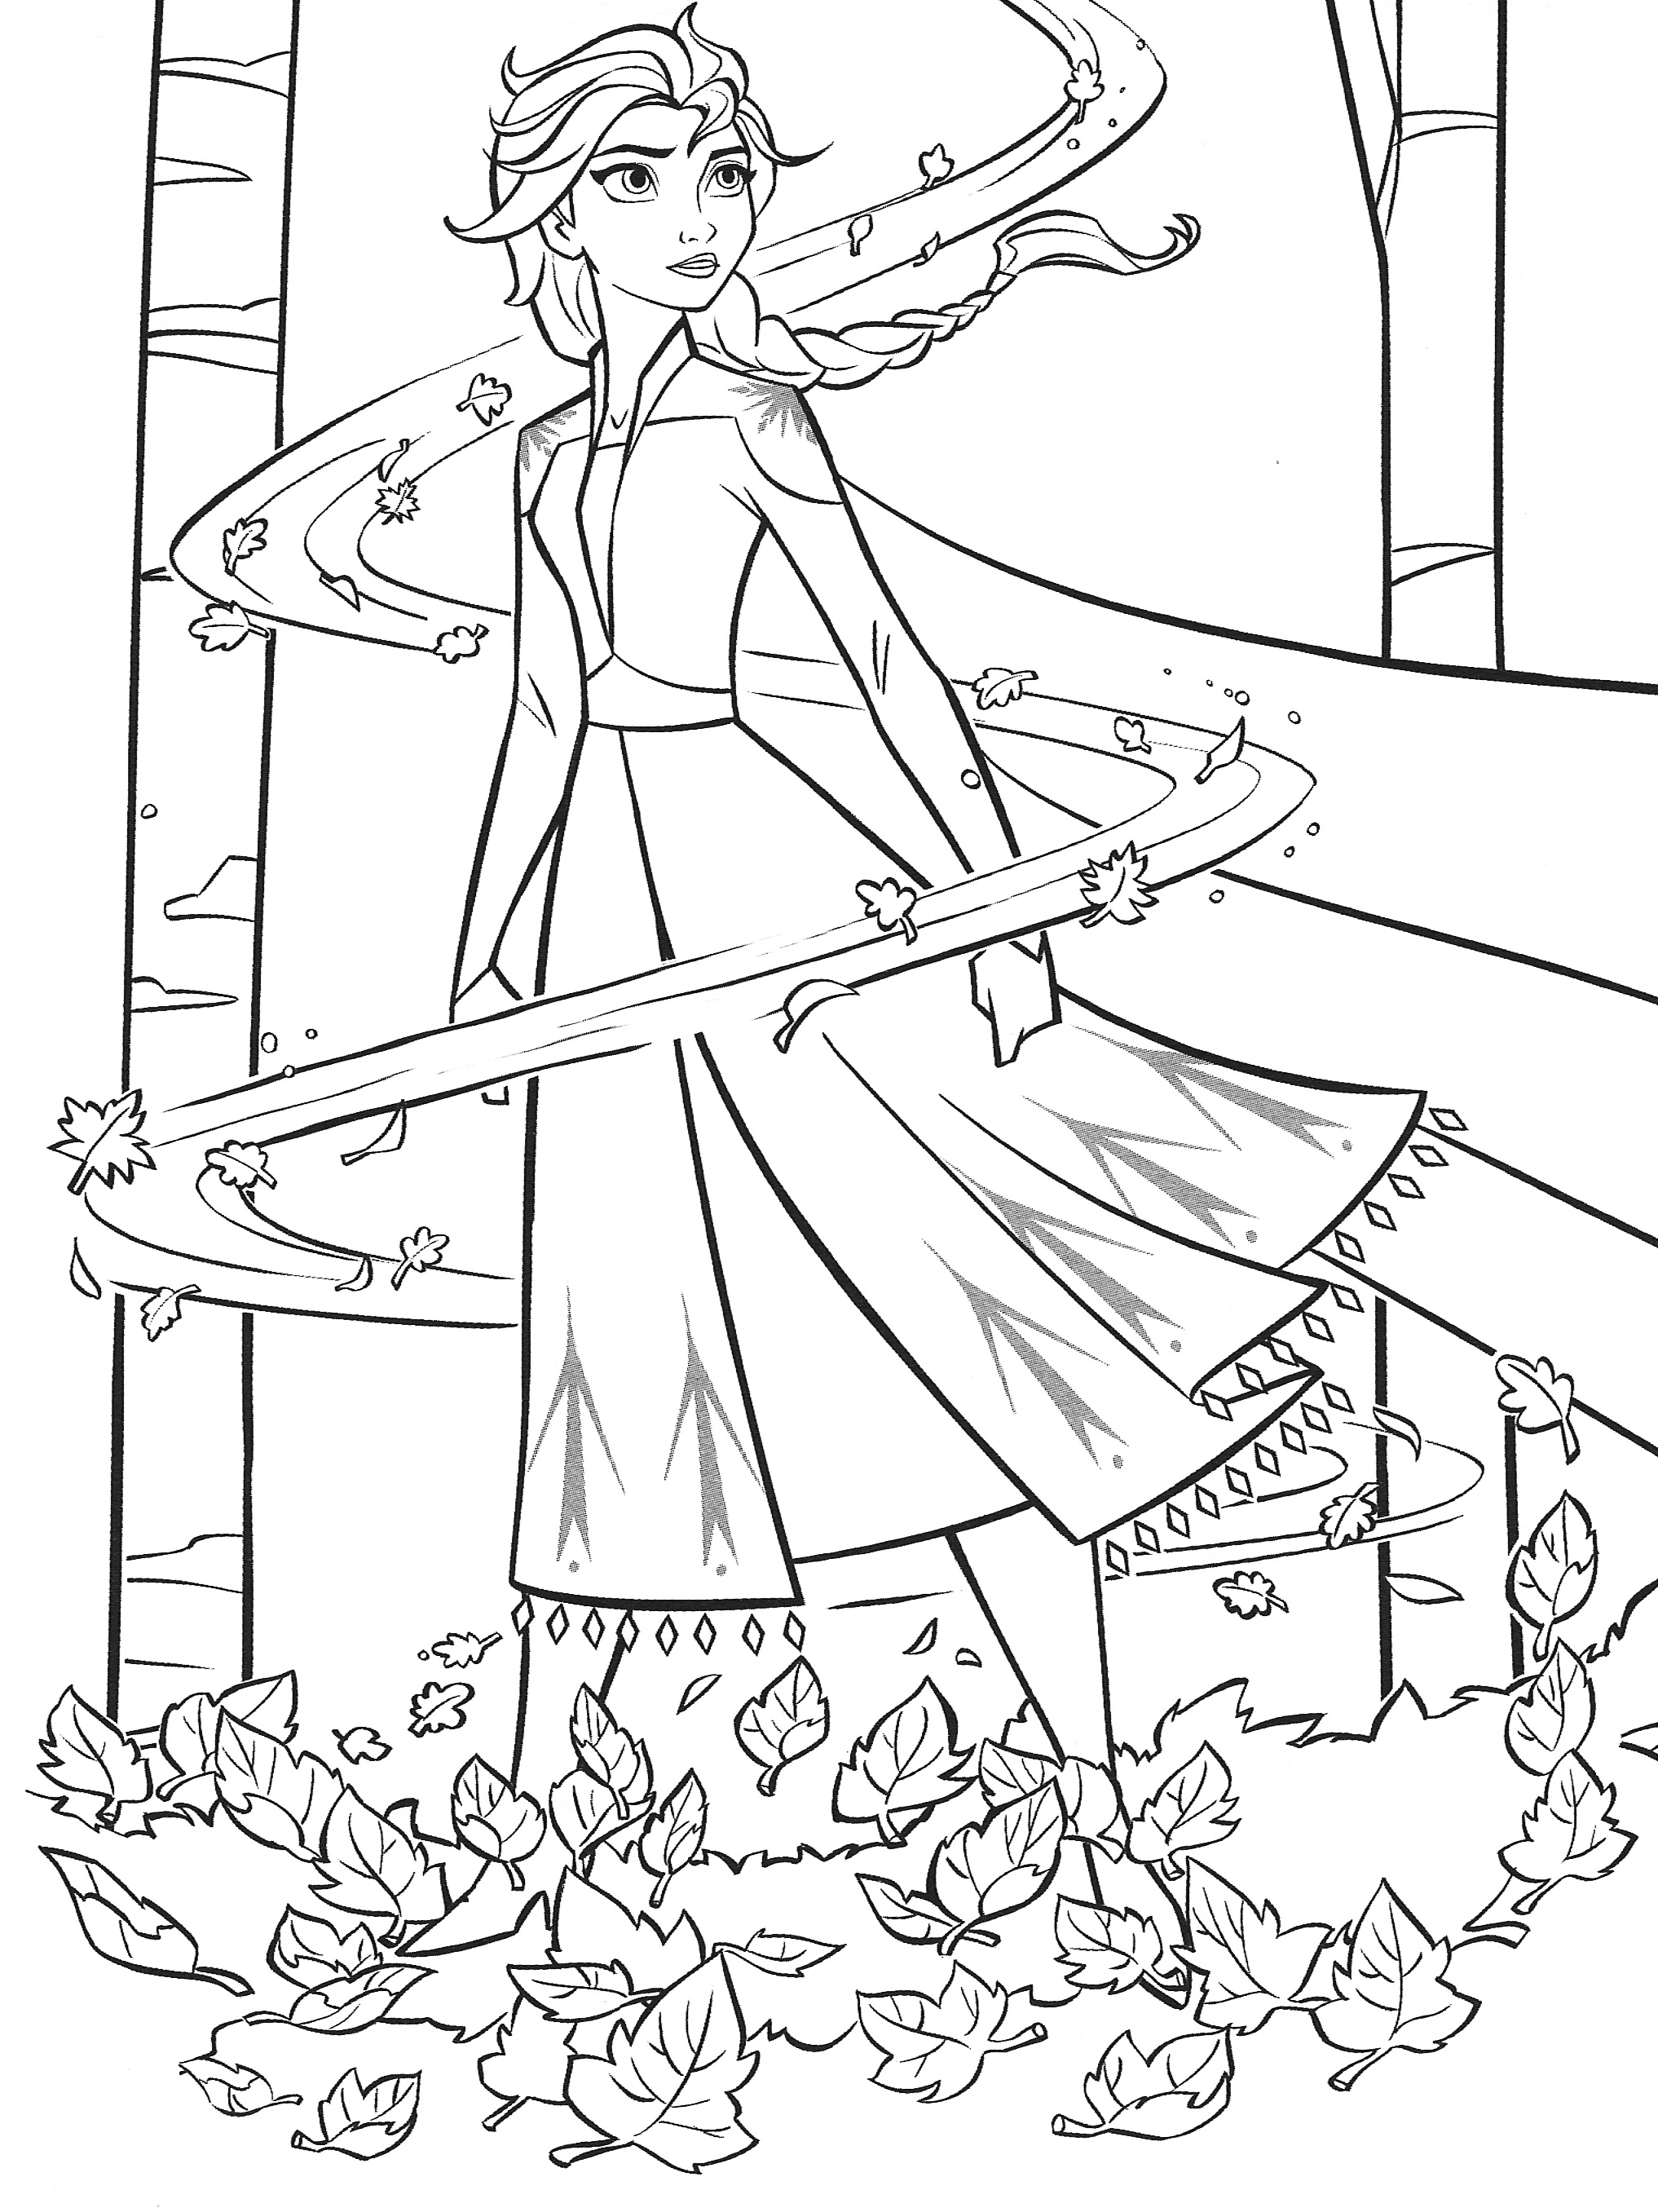 color pages frozen new frozen 2 coloring pages with elsa youloveitcom frozen color pages